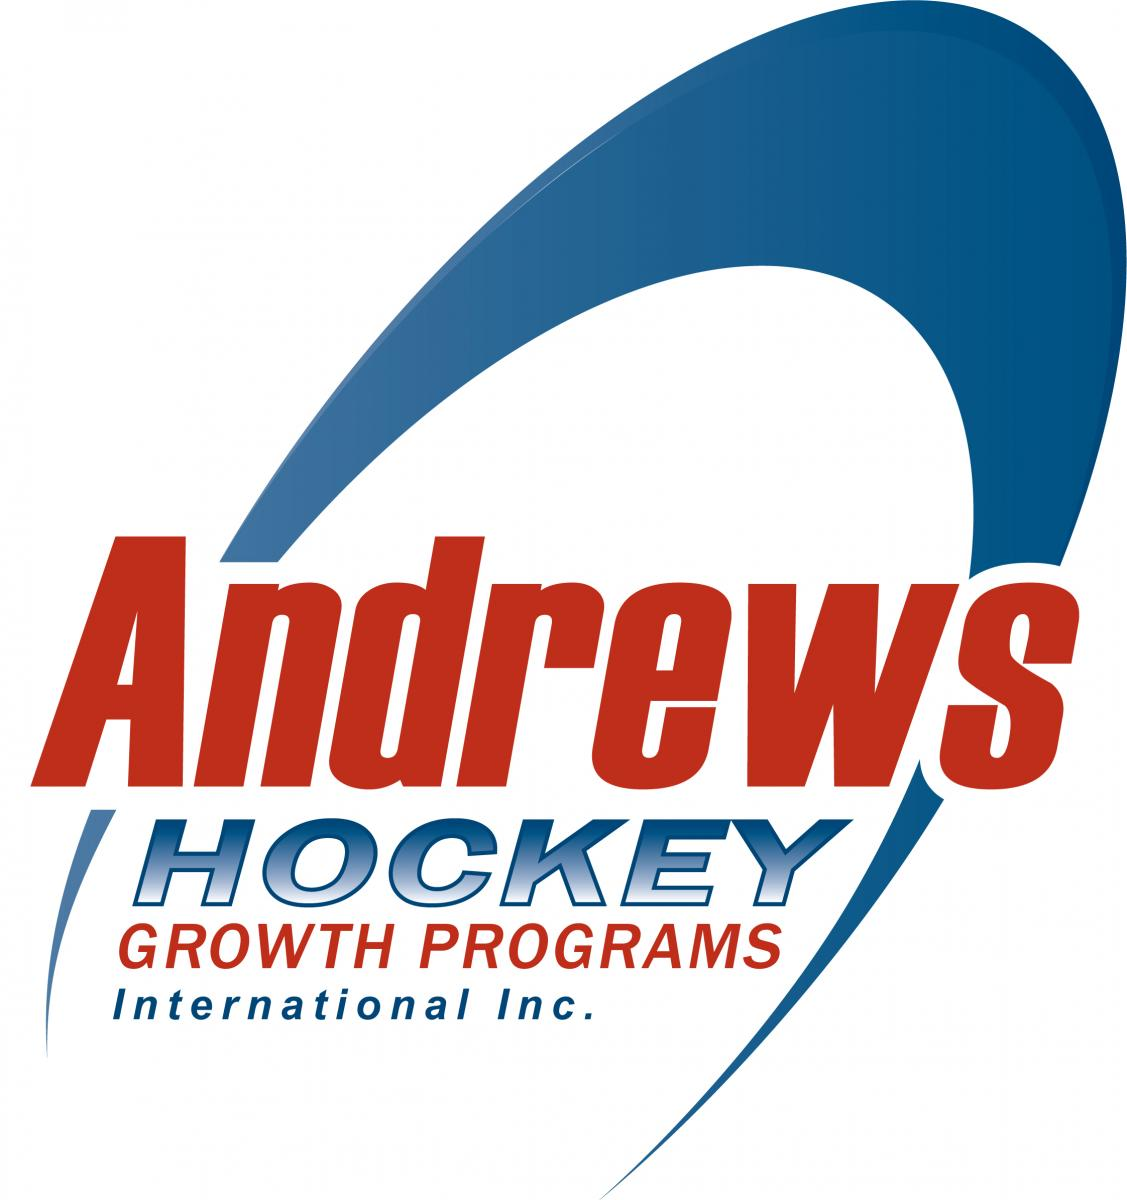 http://www.hockeygrowth.com/